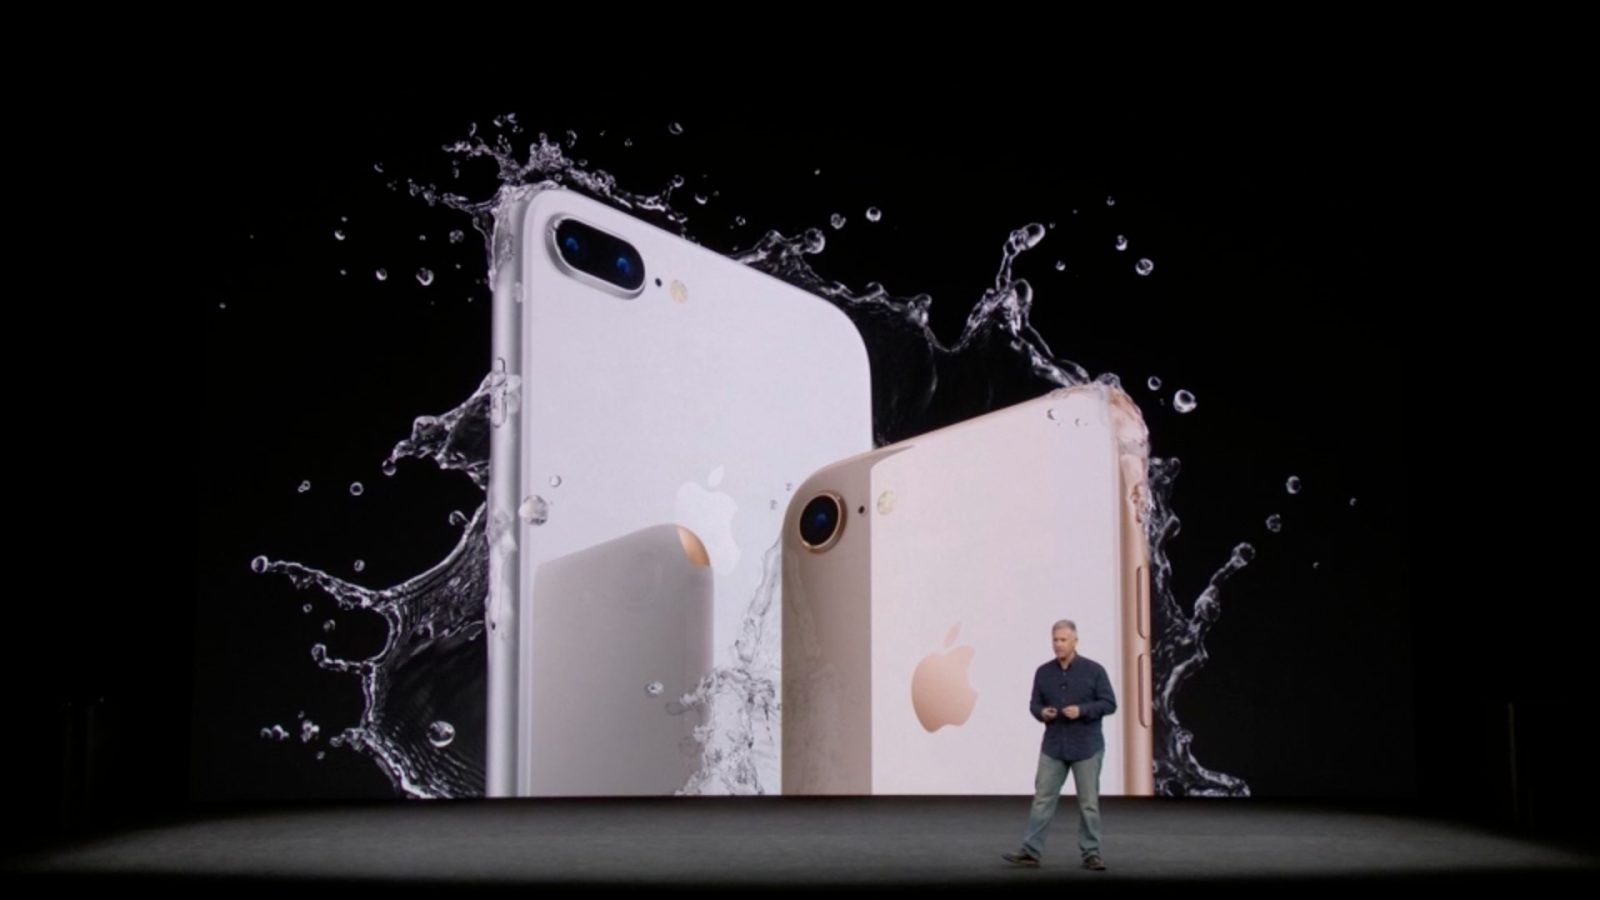 Iphone 8 Launch Sees Bleak Turnout In Australia And London